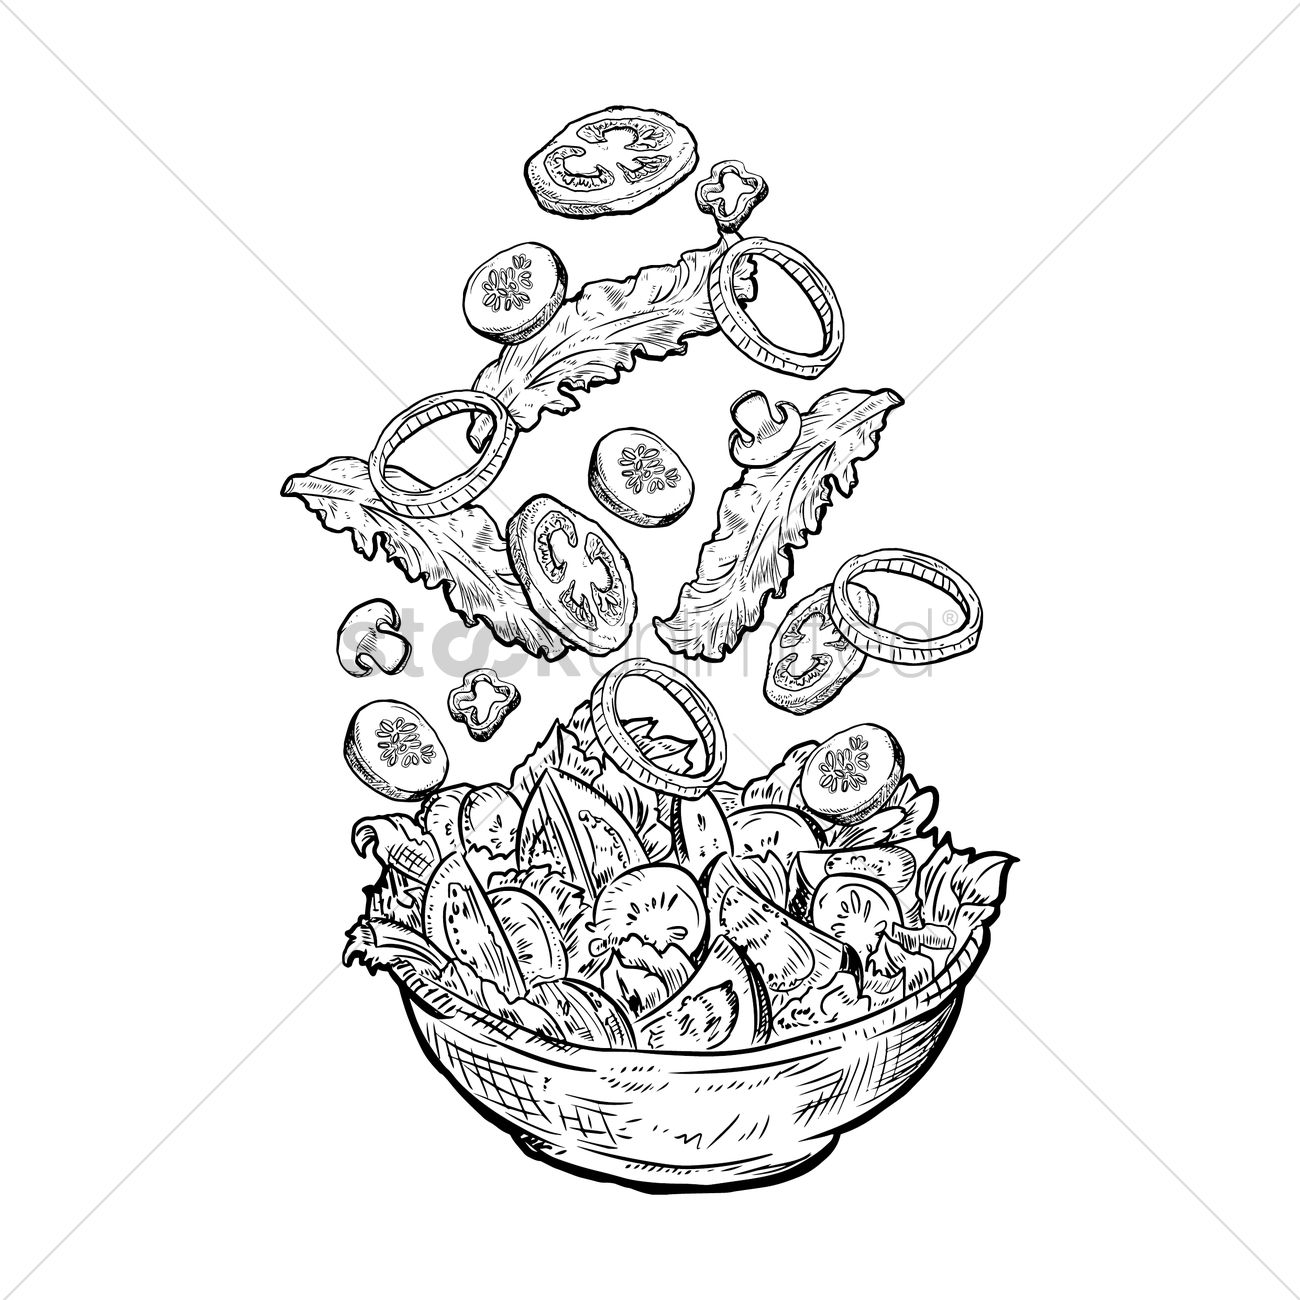 Tossed Salad Vector Image